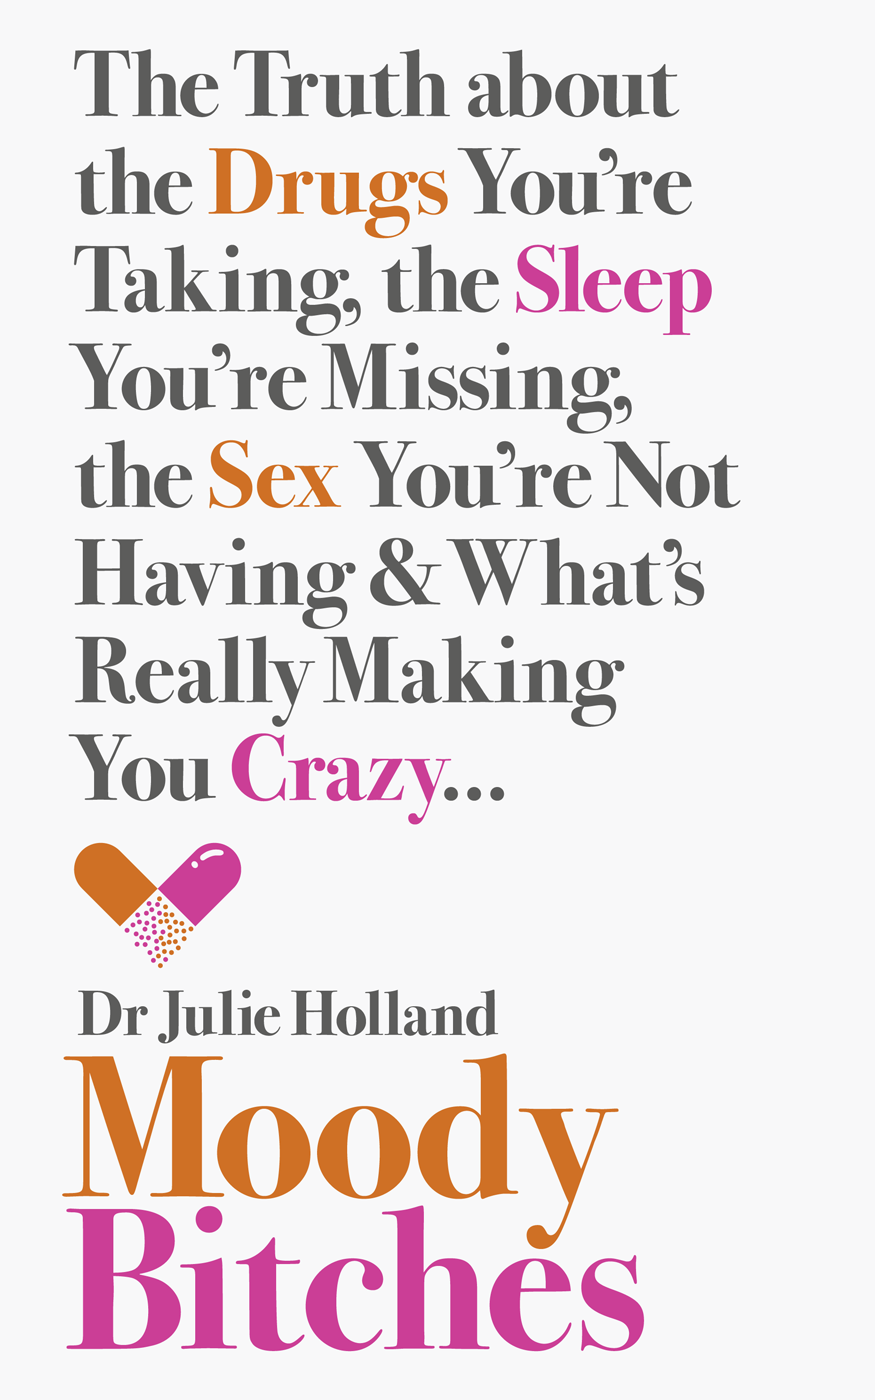 Julie Holland Moody Bitches The Truth about the Drugs You're Taking the Sleep You're Missing the Sex You're Not Having and What's Really Making You Crazy